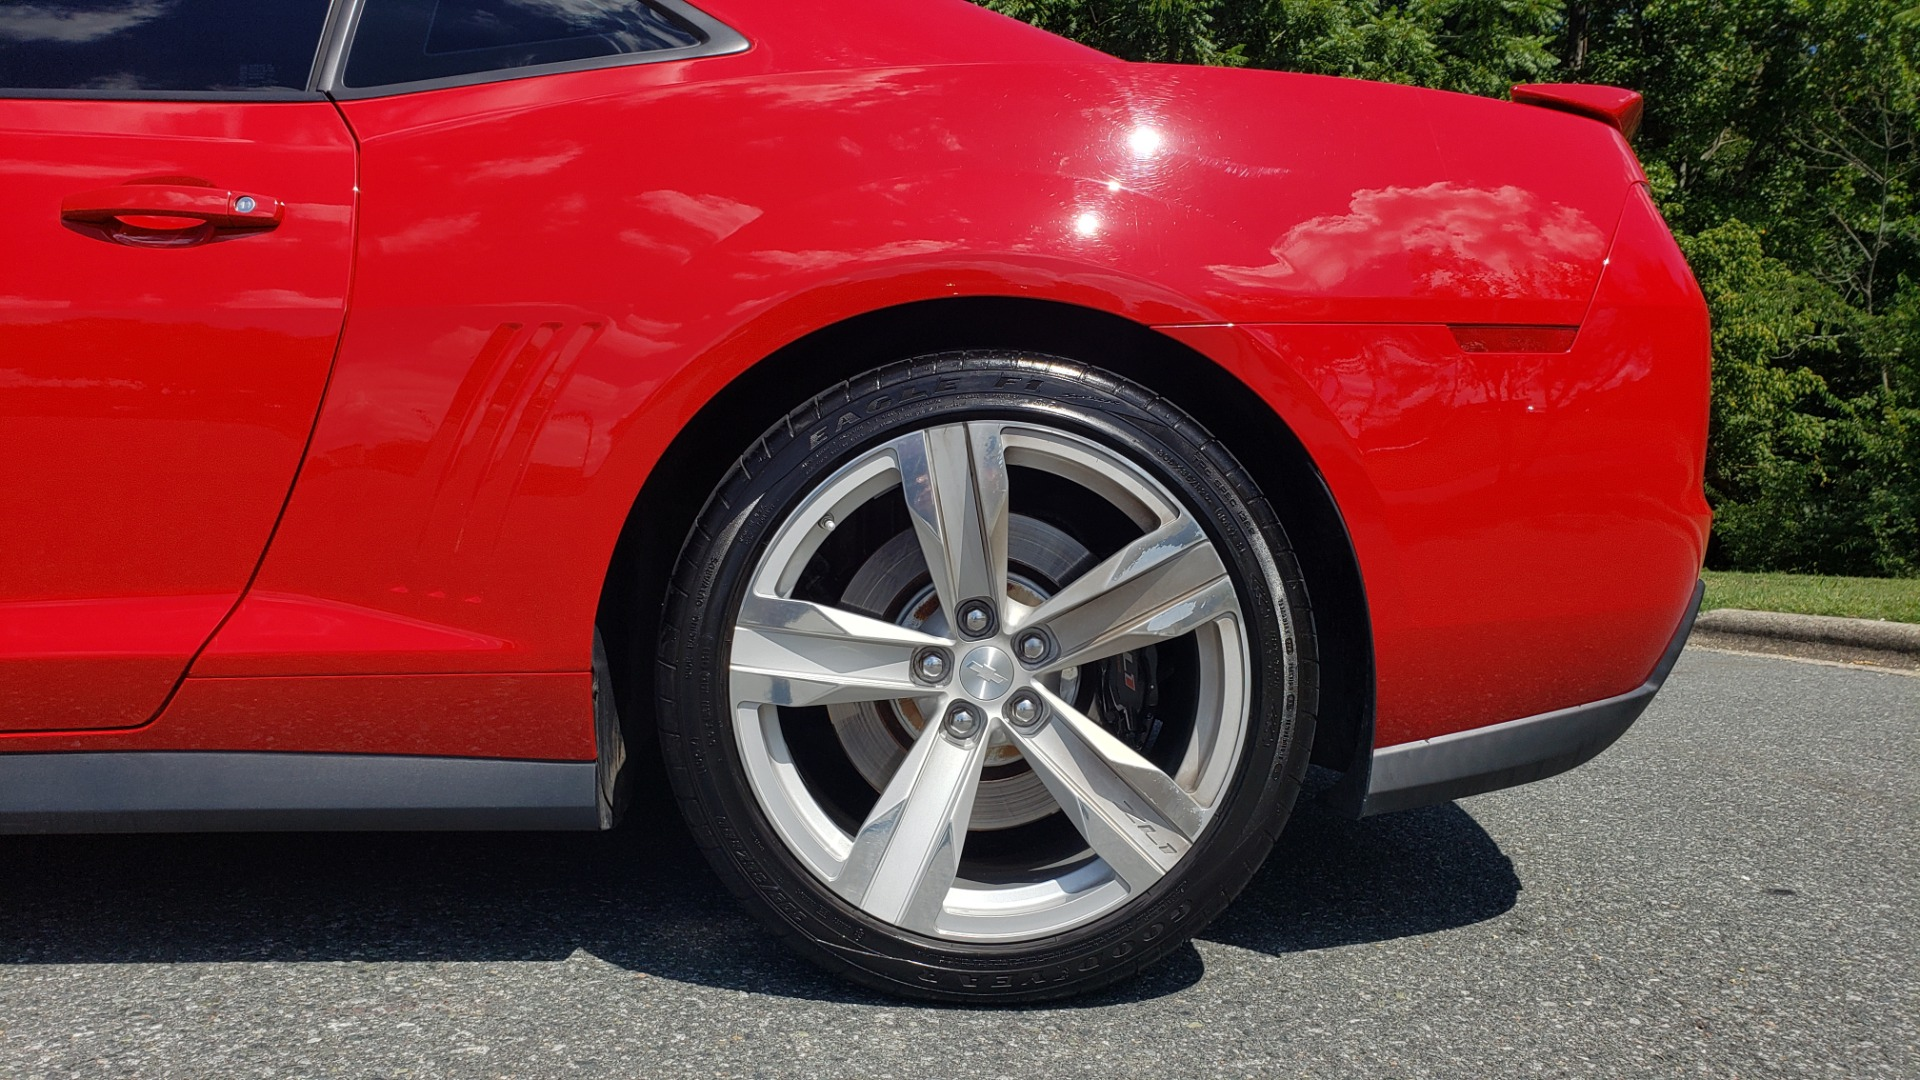 Used 2013 Chevrolet CAMARO ZL1 580HP / AUTO / NAV / BOSTON ACOUSTIC SND / REARVIEW for sale $40,995 at Formula Imports in Charlotte NC 28227 86